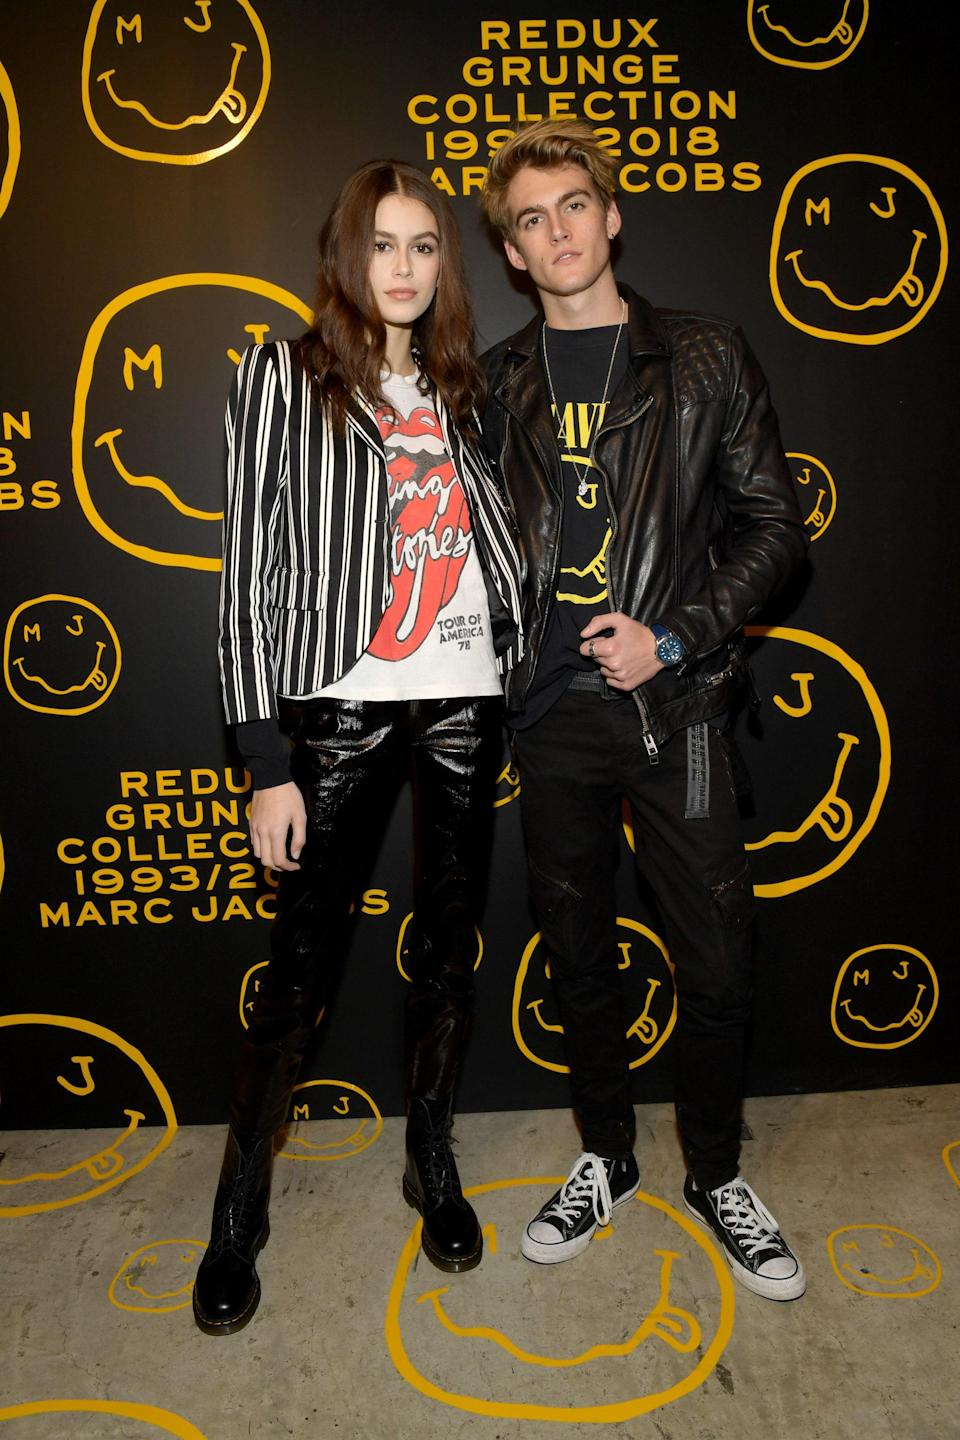 Band tees for Marc Jacobs' Redux Grunge Collection unveiling alongside brother Presley Gerber.